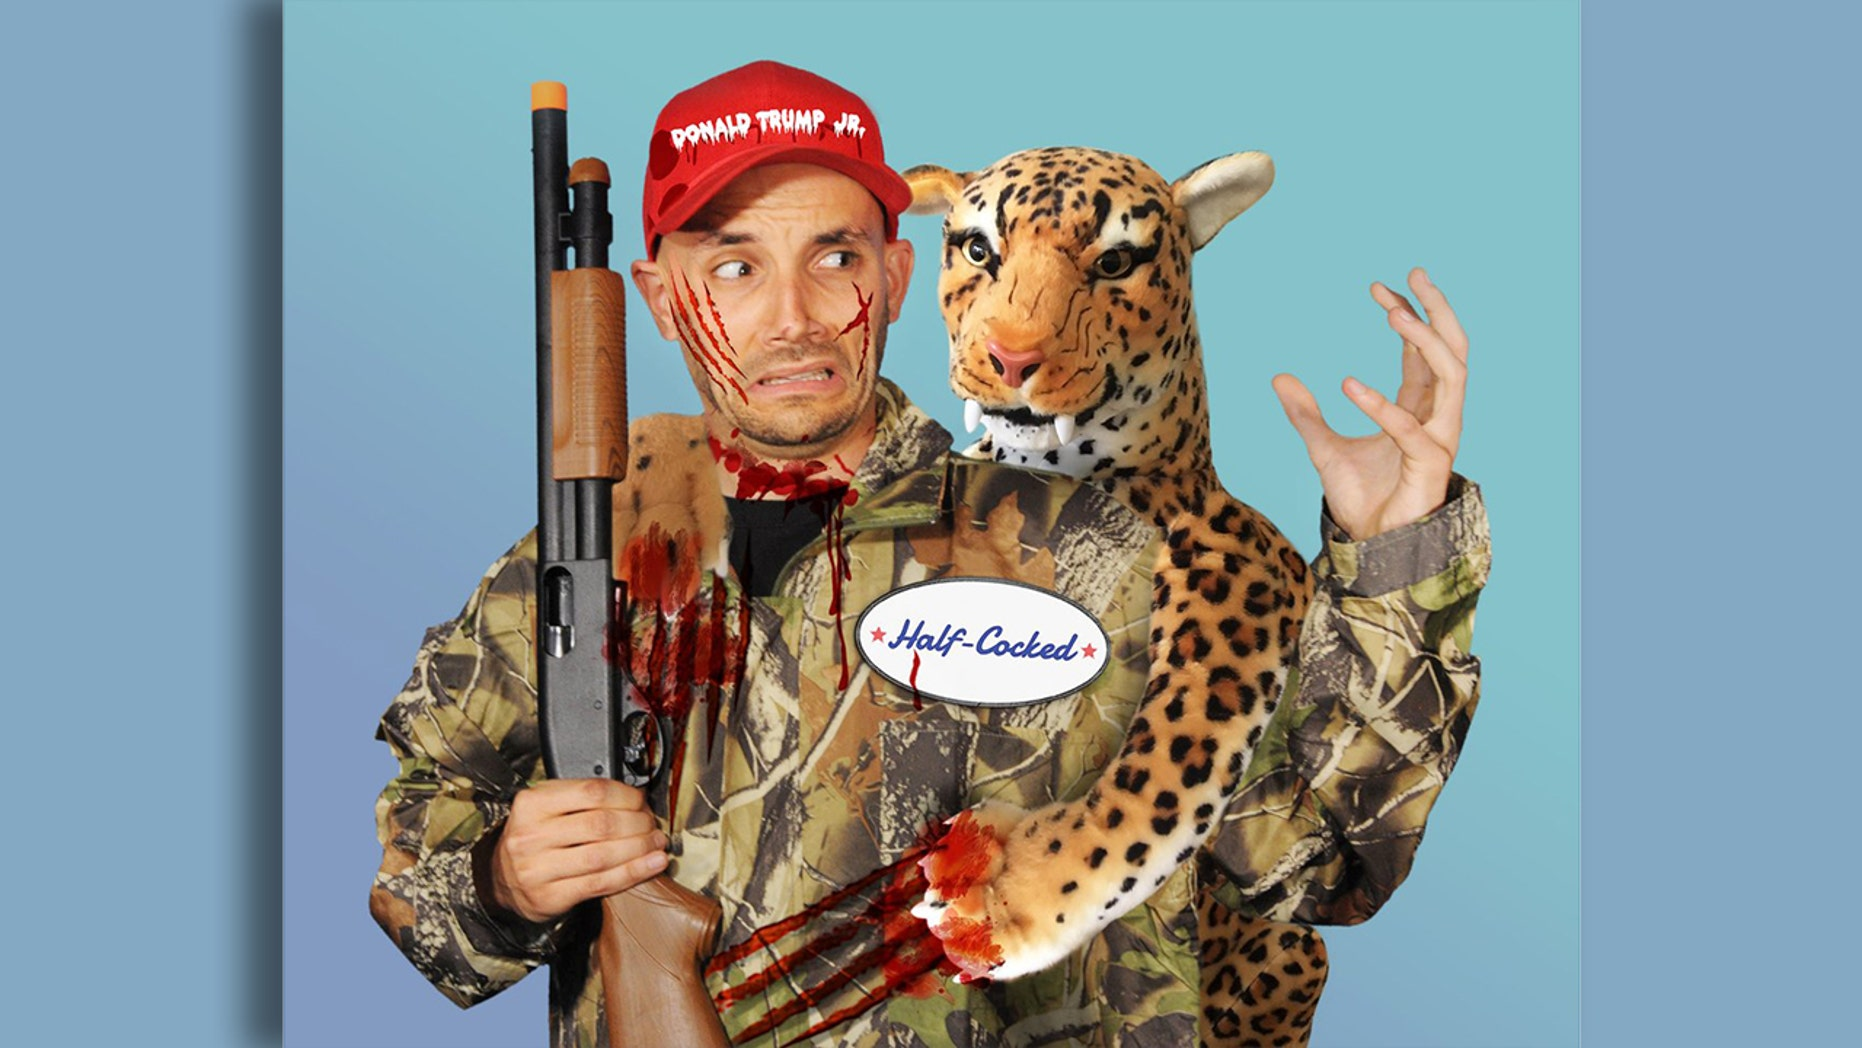 Donald Trump Jr. has responded to PETA's costume by calling the organization out on its high animal euthanizing rate.